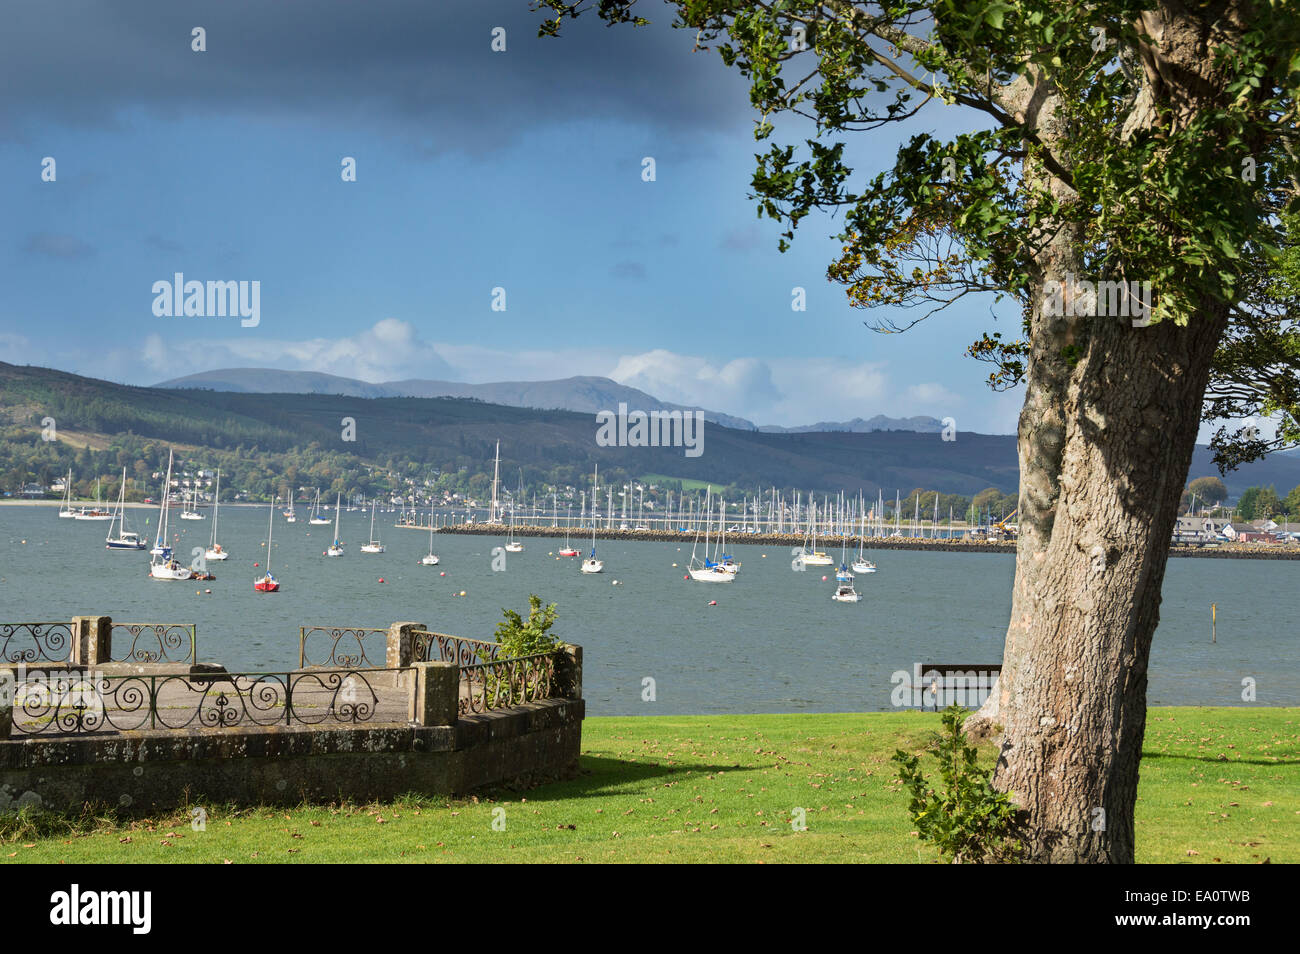 Looking across Gare loch from Kidston Park, Helensburgh, Argyll, and, Bute,  Scotland; UK - Stock Image